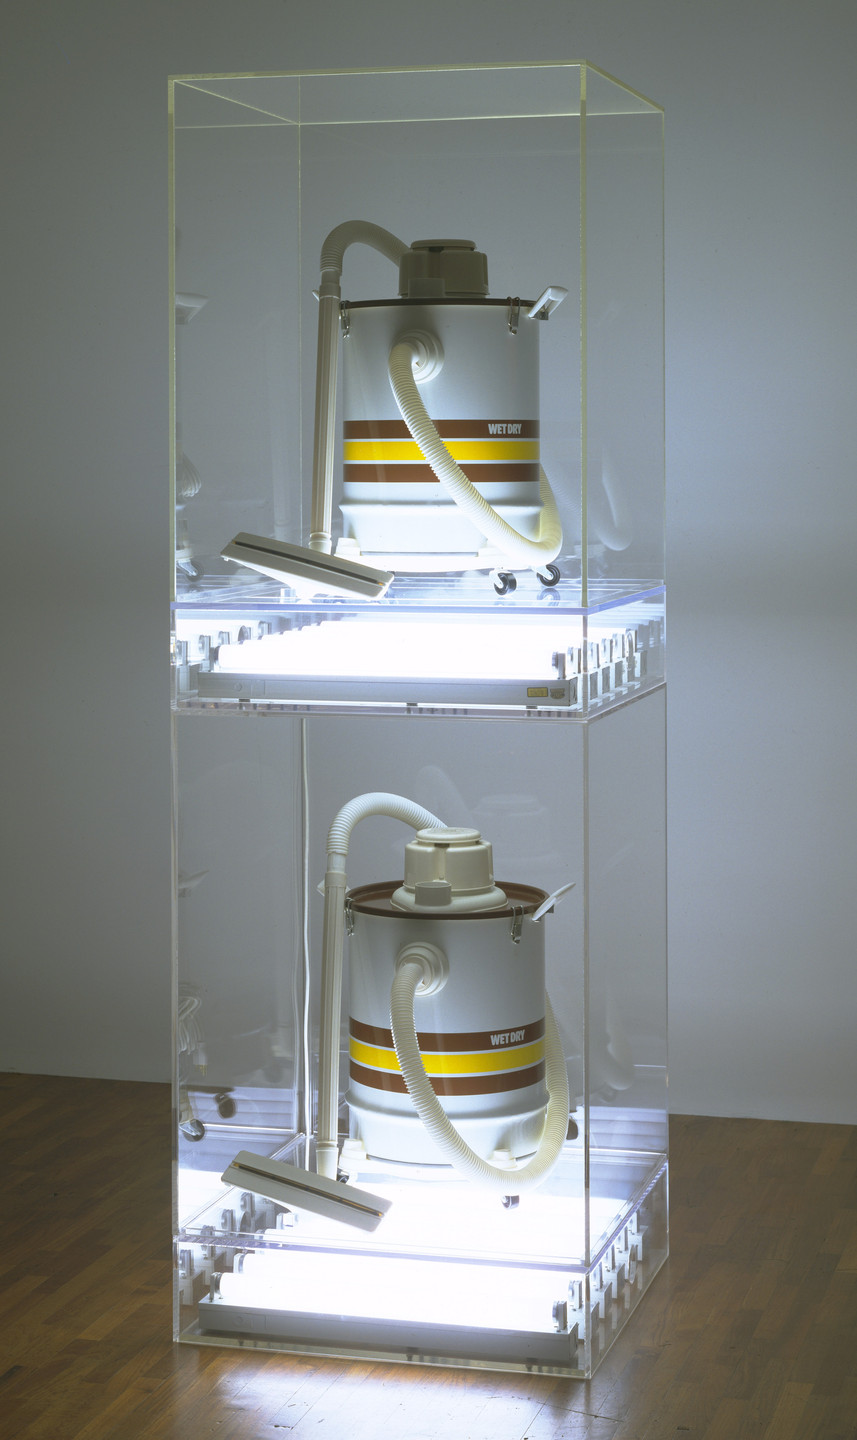 Jeff Koons. New Shelton Wet/Dry Doubledecker. 1981